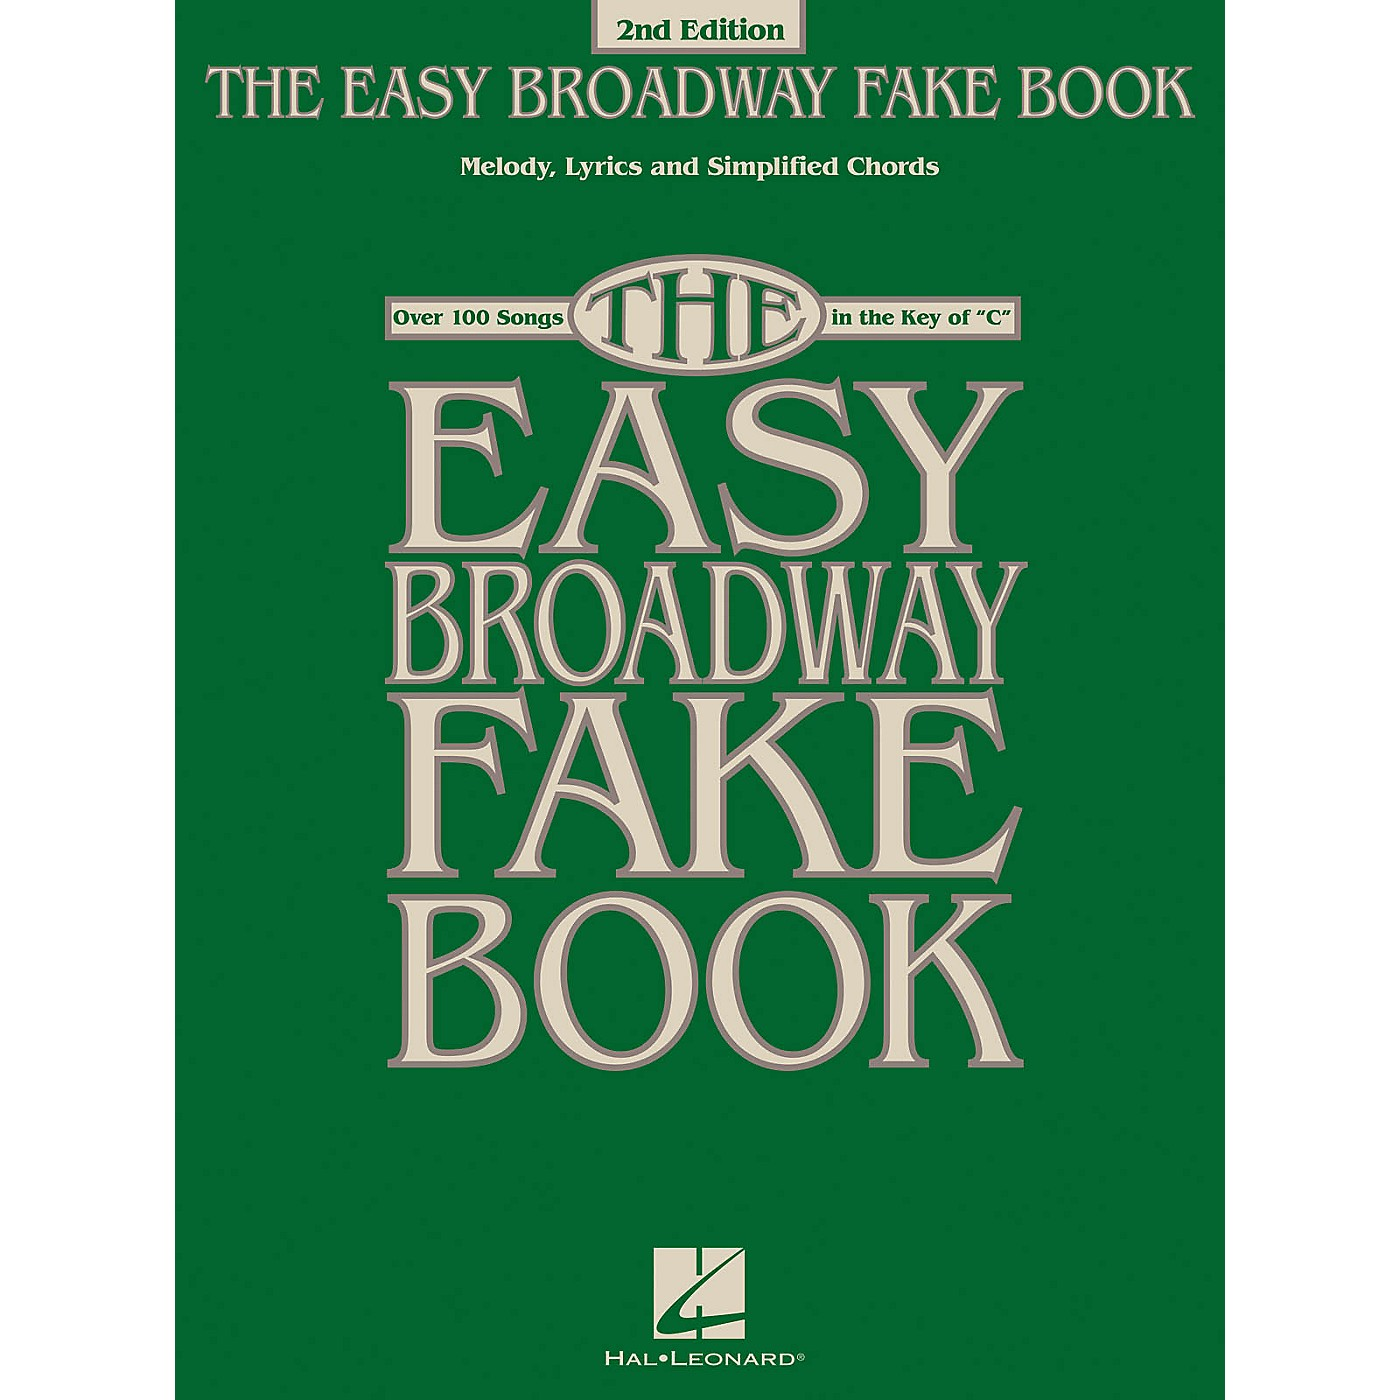 Hal Leonard The Easy Broadway Fake Book - 2nd Edition (Over 100 Songs in the Key of C) thumbnail